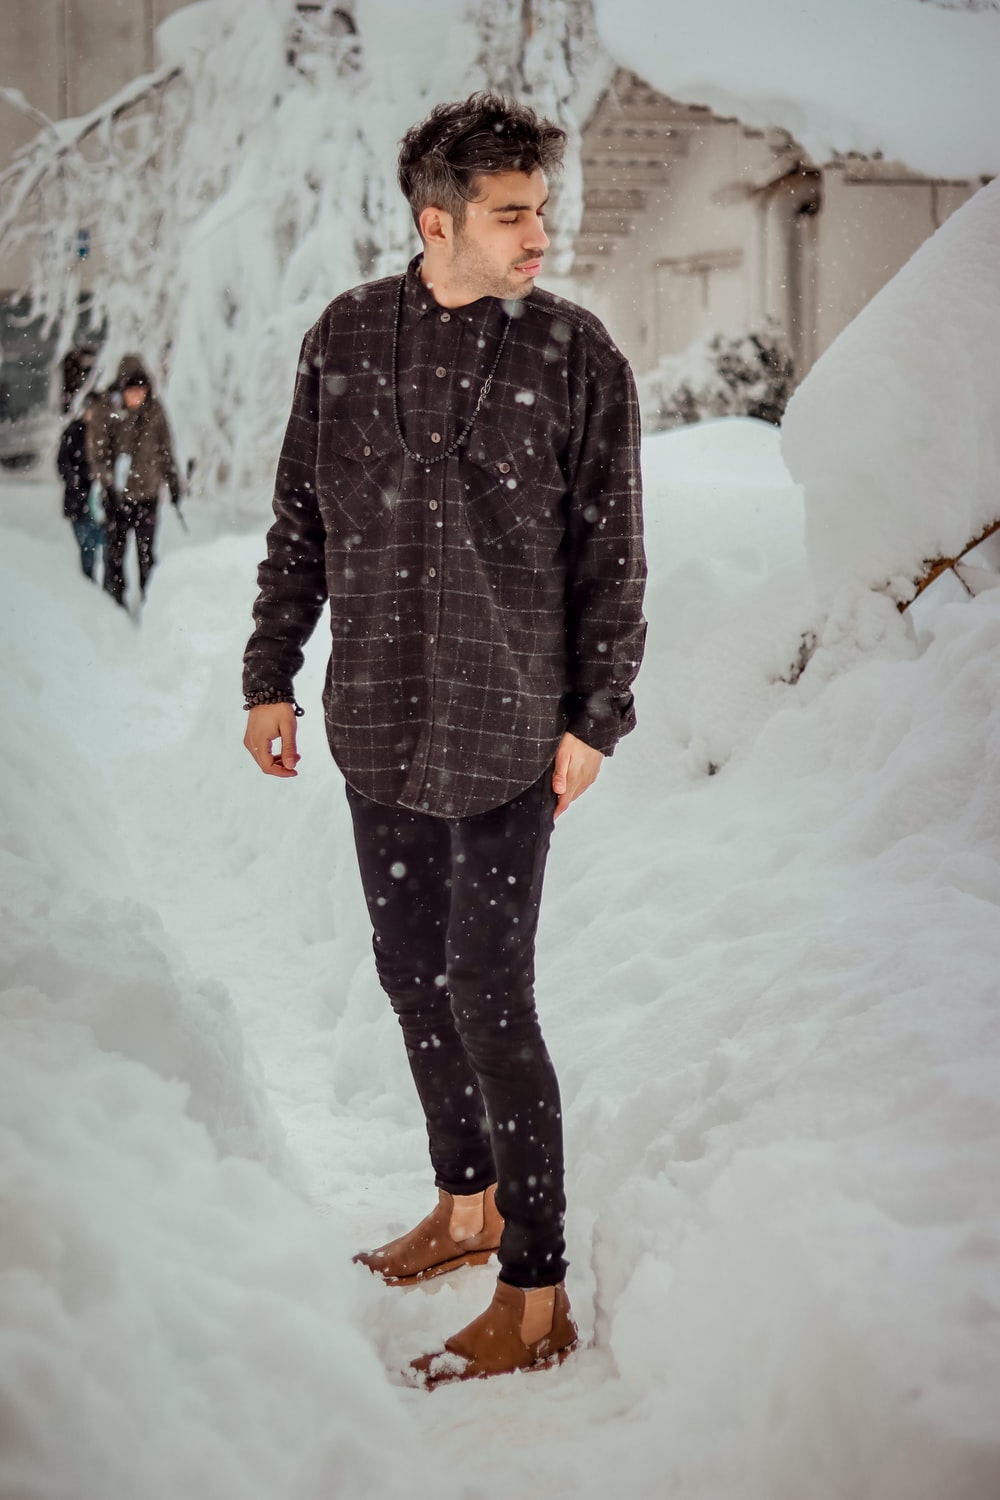 man in black and gray striped coat standing on snow covered ground during daytime